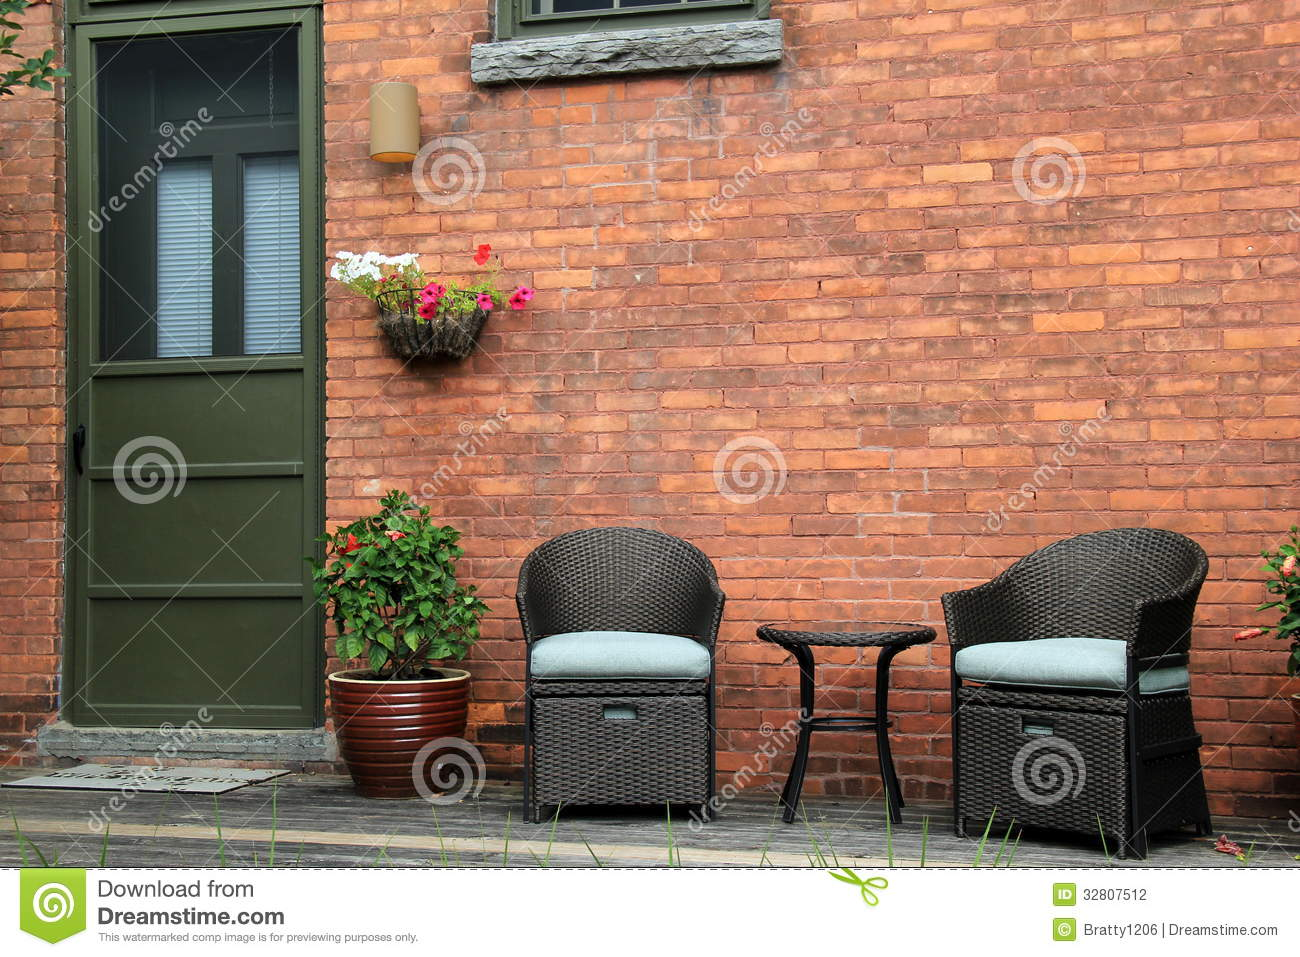 Download Attractive Wood Porch With Outdoor Furniture Of Old Brick Home.  Stock Photo - Image - Attractive Wood Porch With Outdoor Furniture Of Old Brick Home